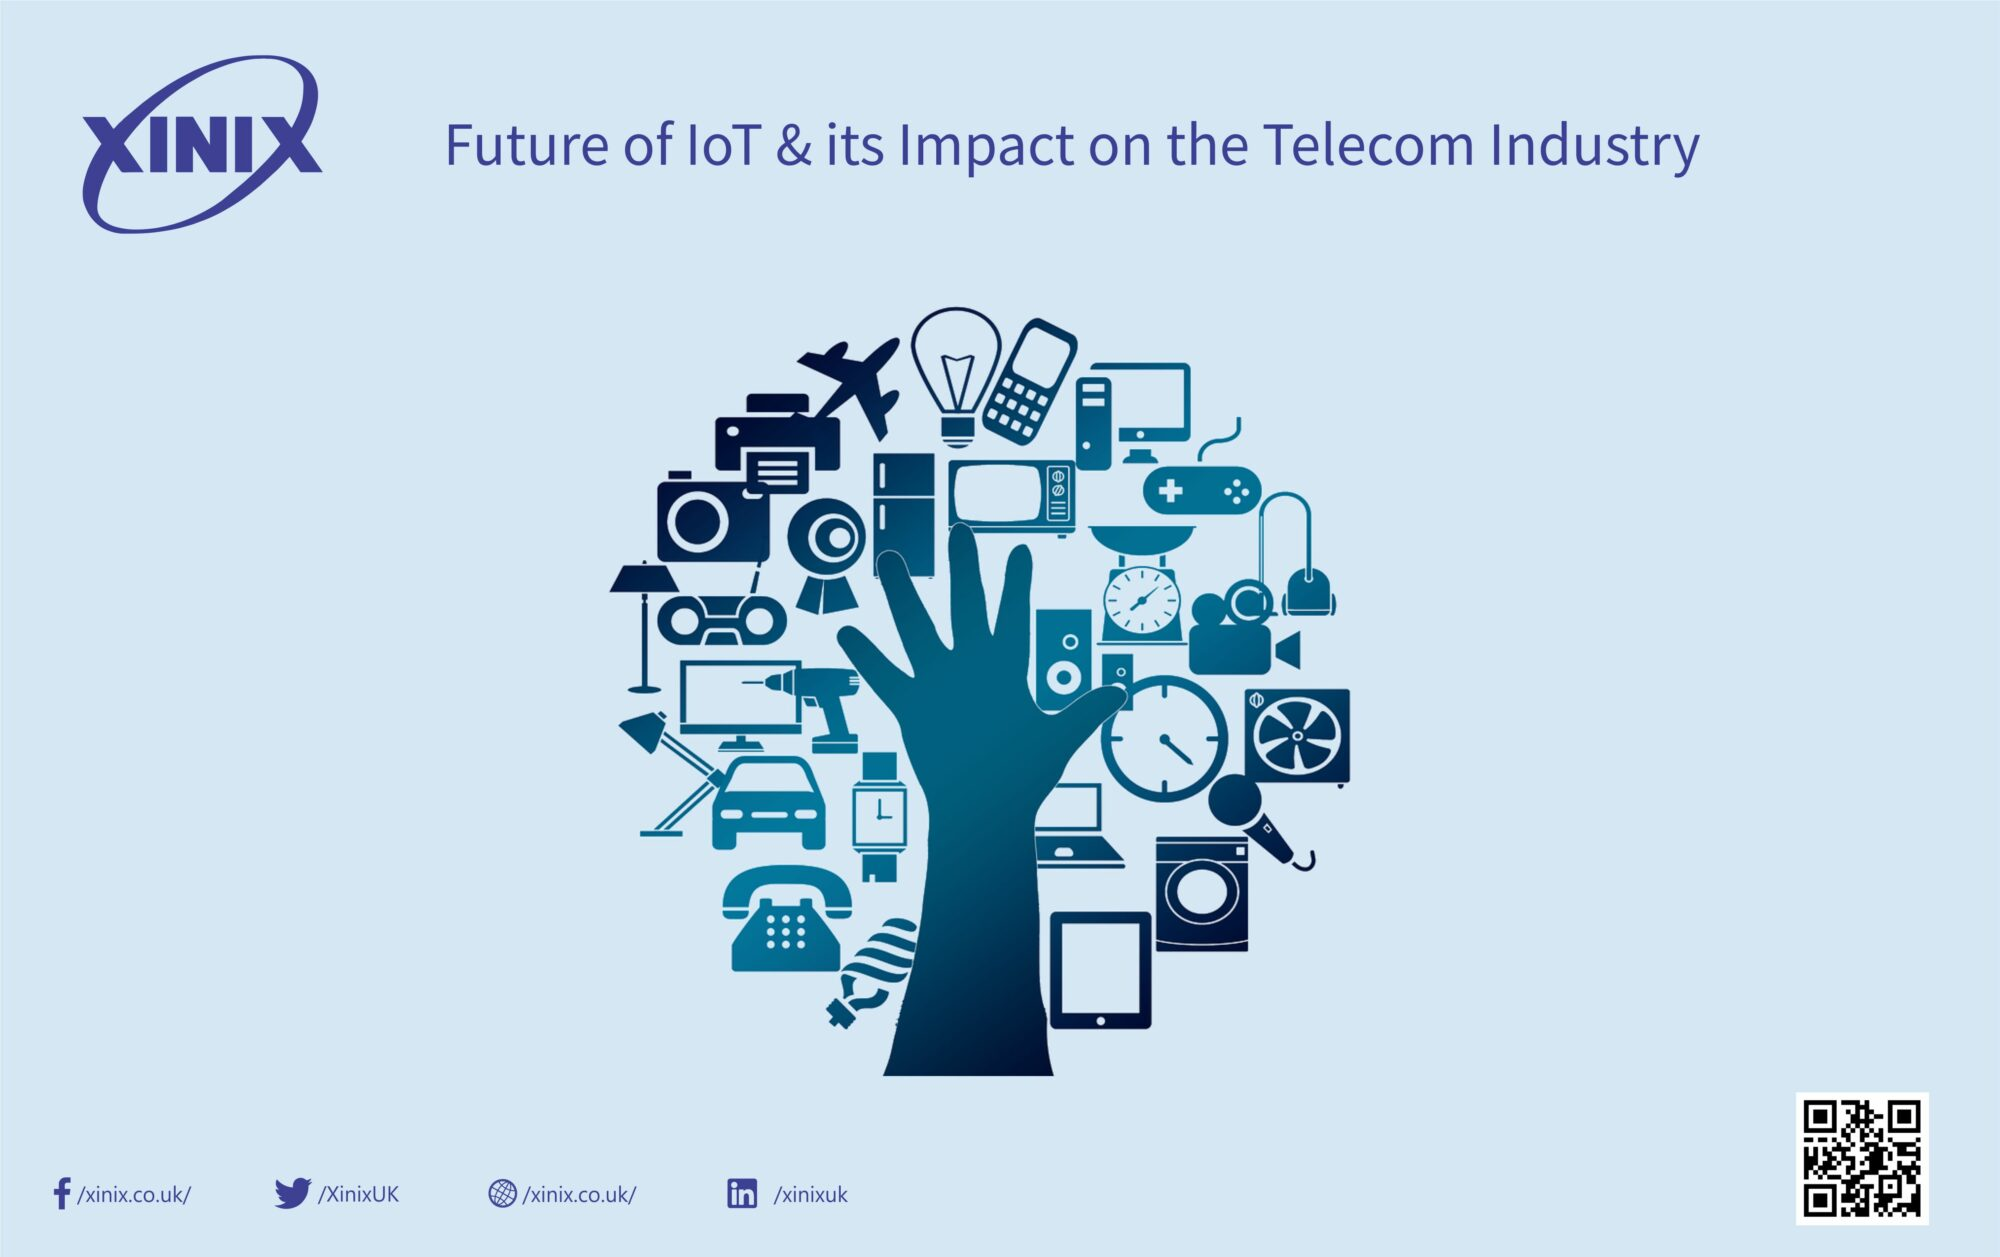 Future of IoT & its Impact on the Telecom Industry